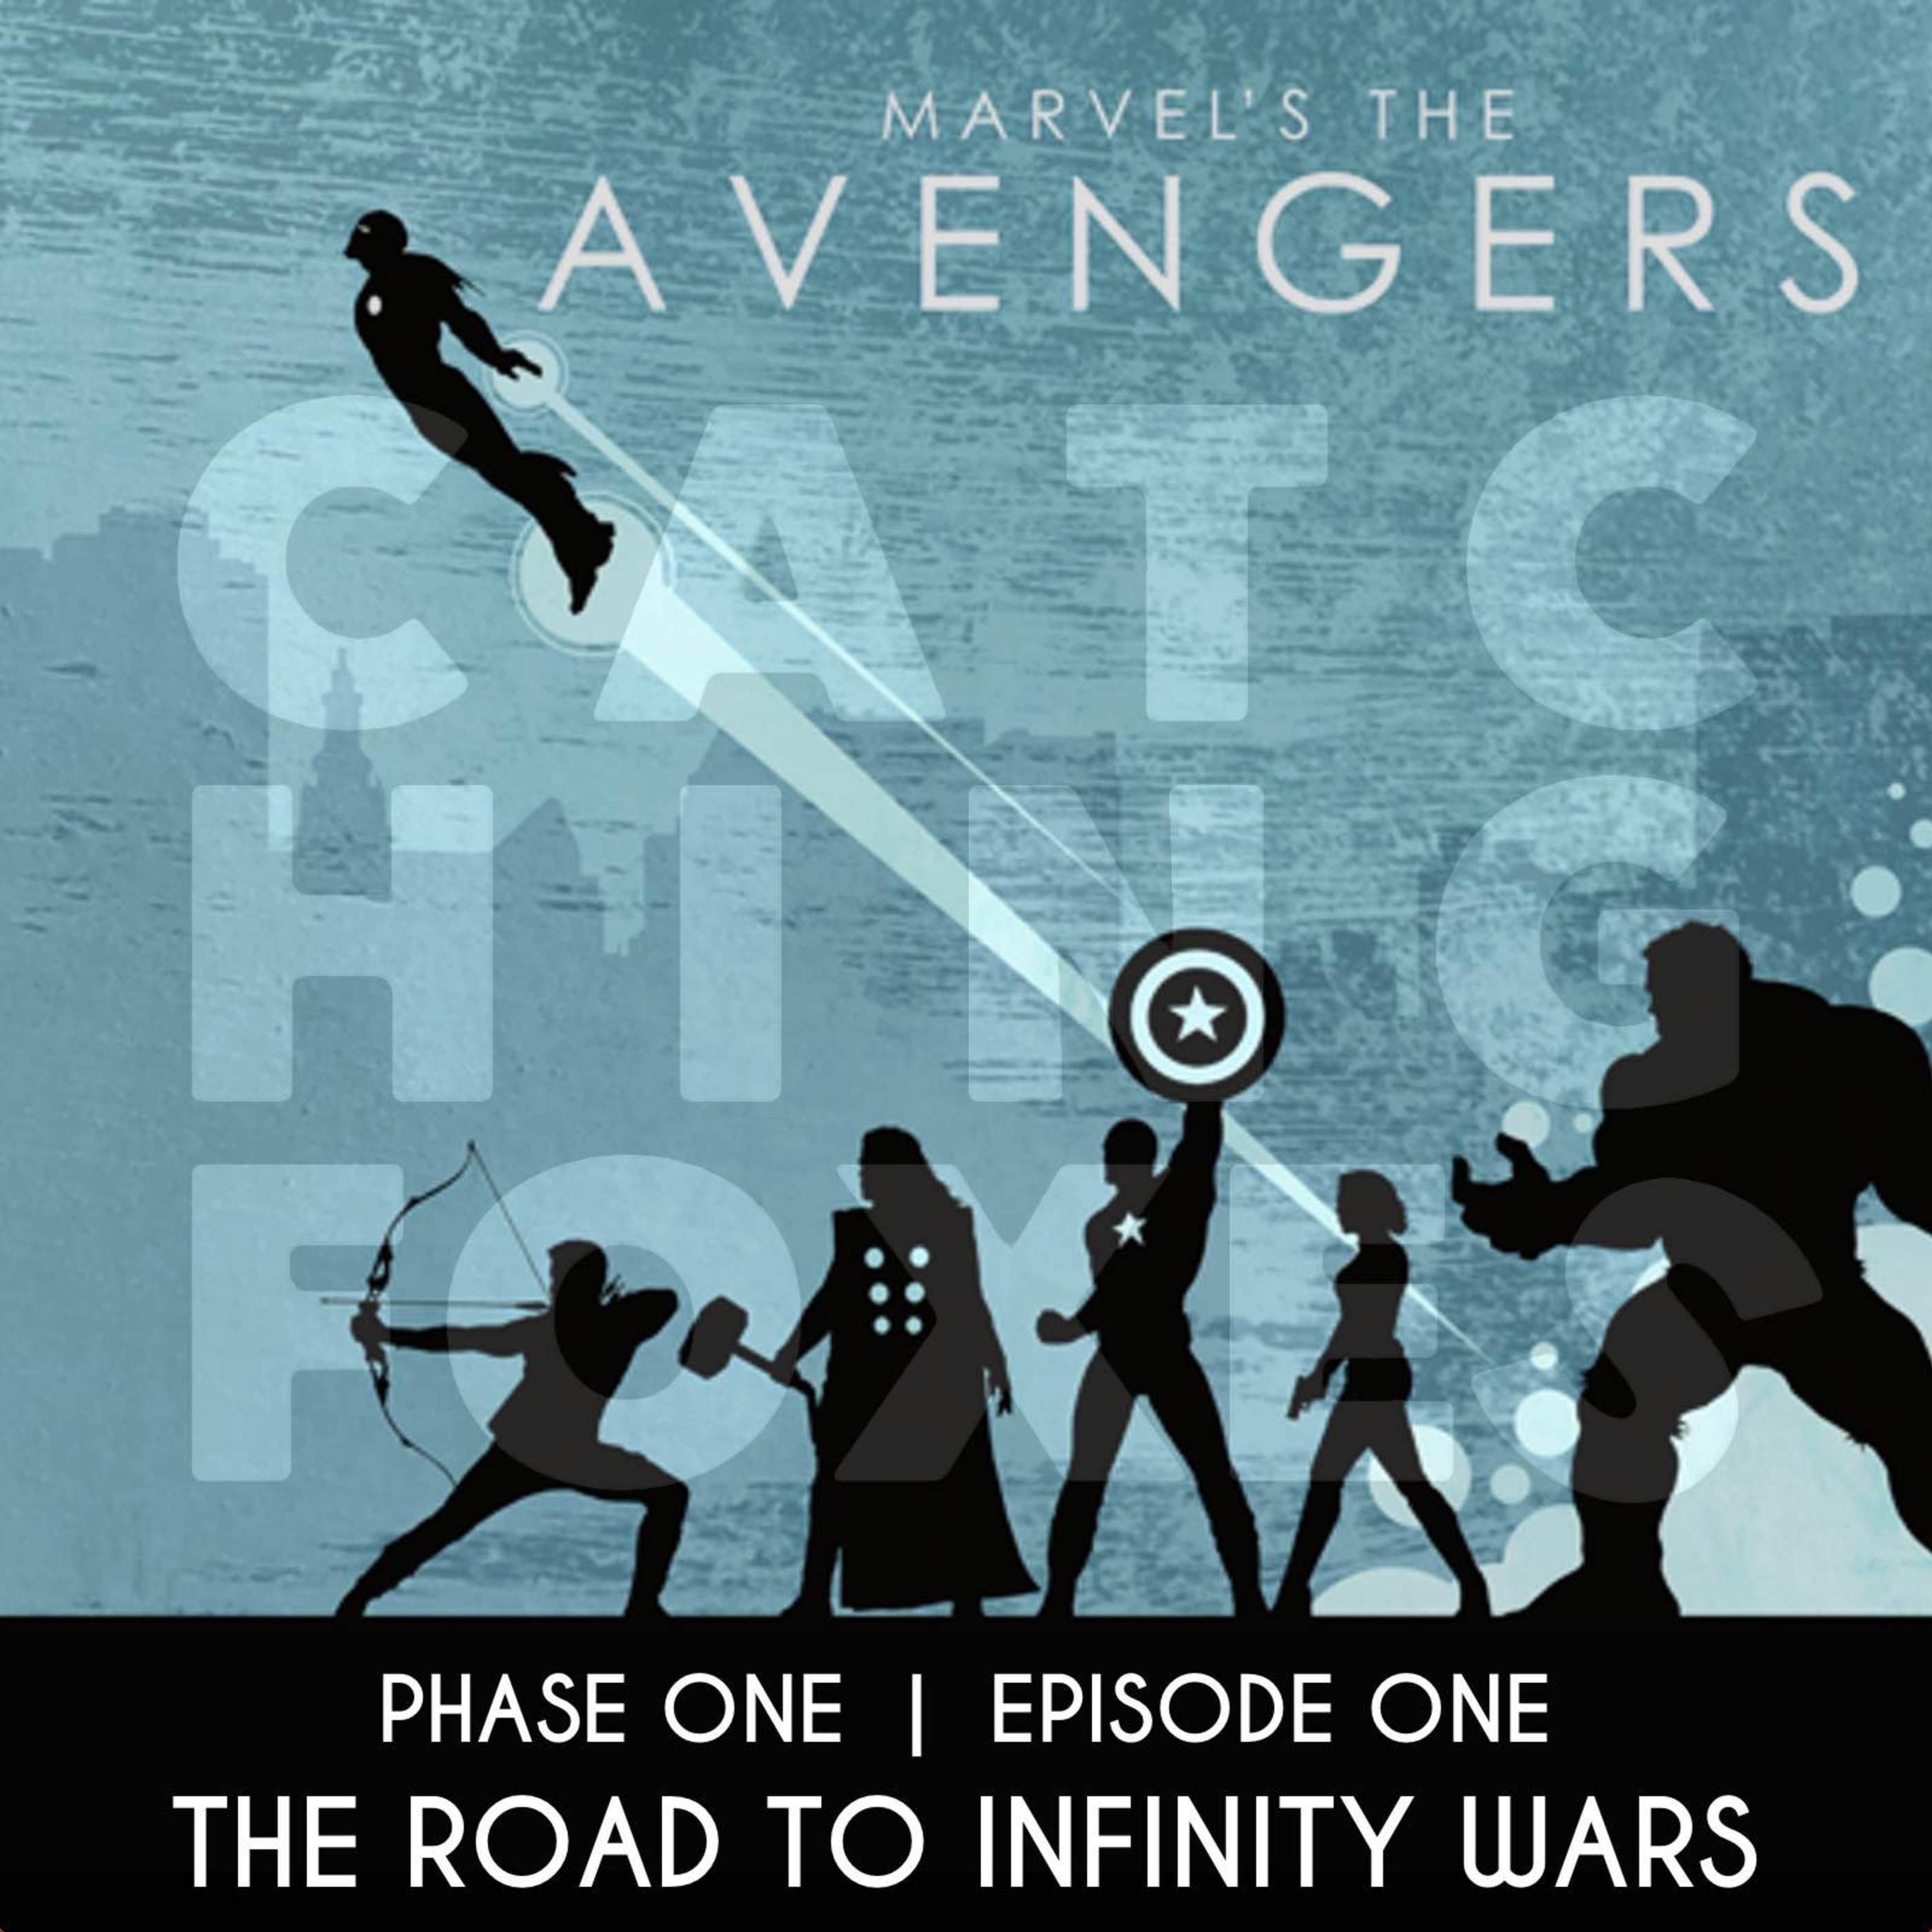 The Road to Infinity Wars! Phase One, Episode One